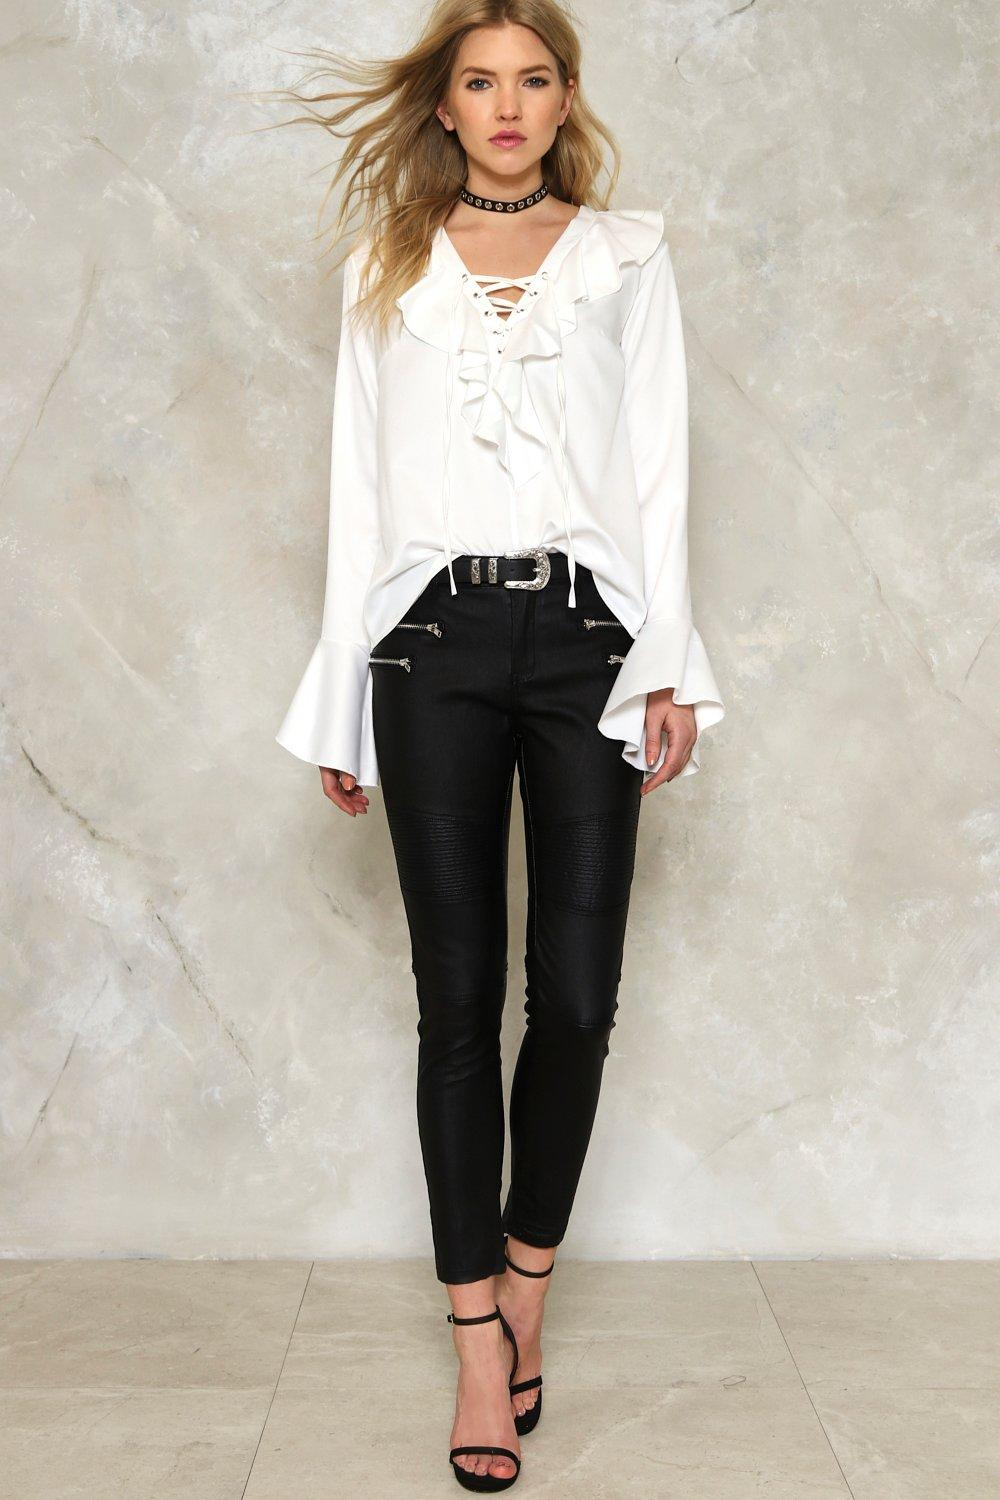 Jeans for Women: Distressed, High-Waisted Jeans ¦ Nasty Gal